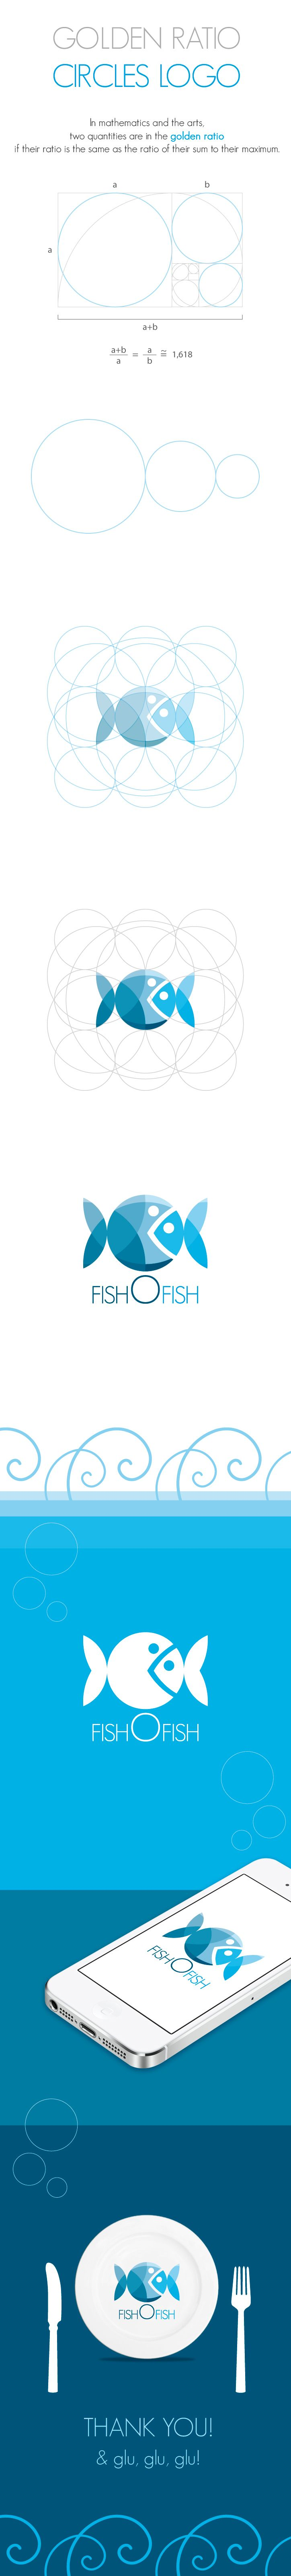 best 20 circle logo design ideas on pinterest logos logo fishofish is a logo composed by circles respecting the golden ratio